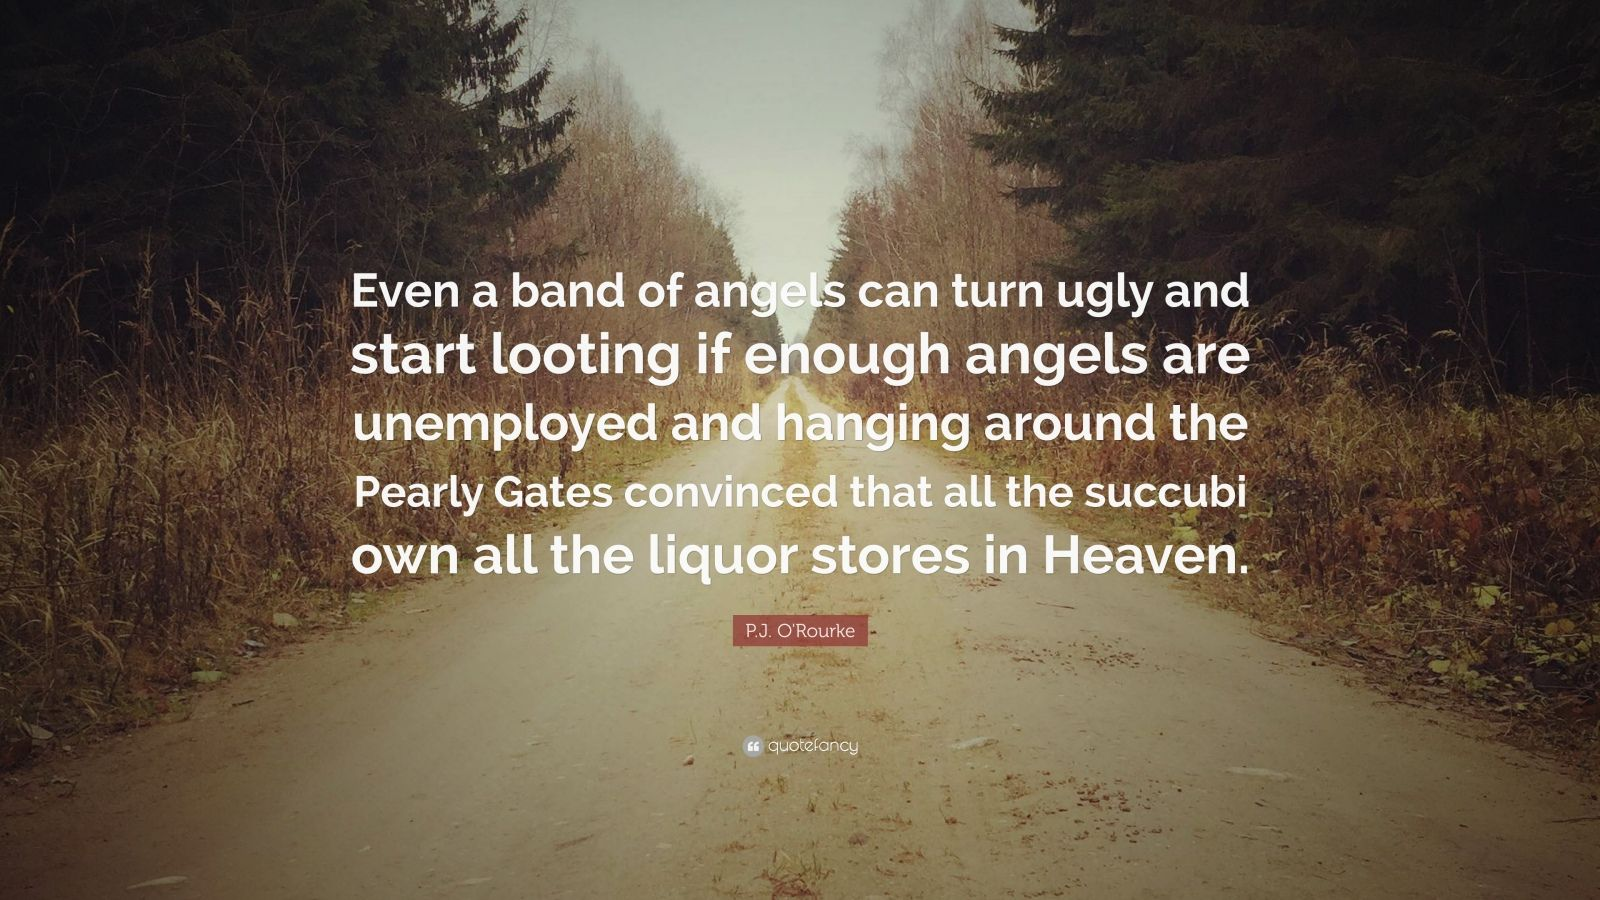 """P.J. O'Rourke Quote: """"Even a band of angels can turn ugly and start looting if enough angels are unemployed and hanging around the Pearly Gates convinced that all the succubi own all the liquor stores in Heaven."""""""